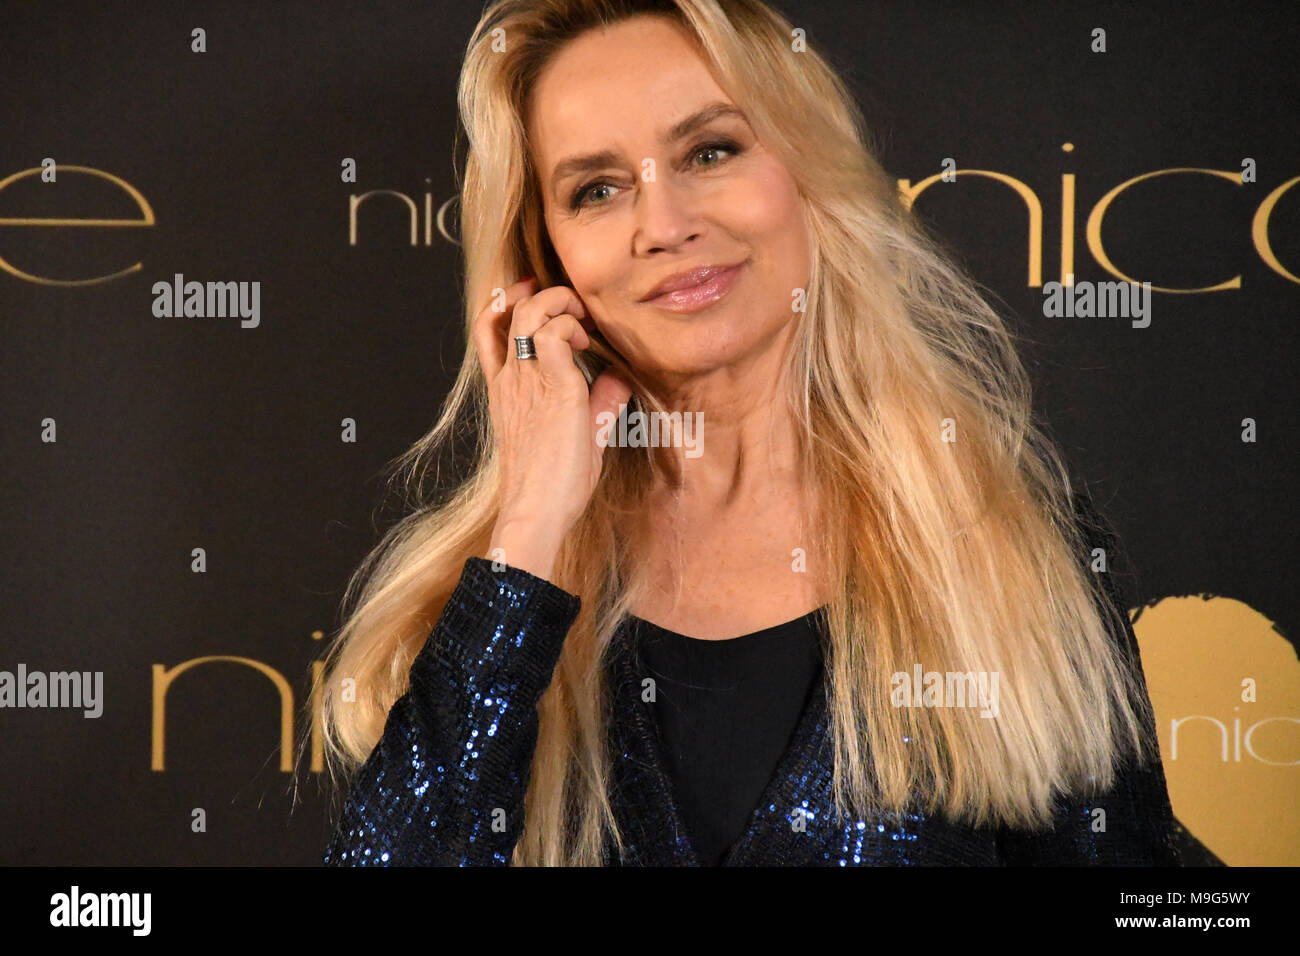 Rome Italy 10 March 10 Congress Palace - Photocall Nicole